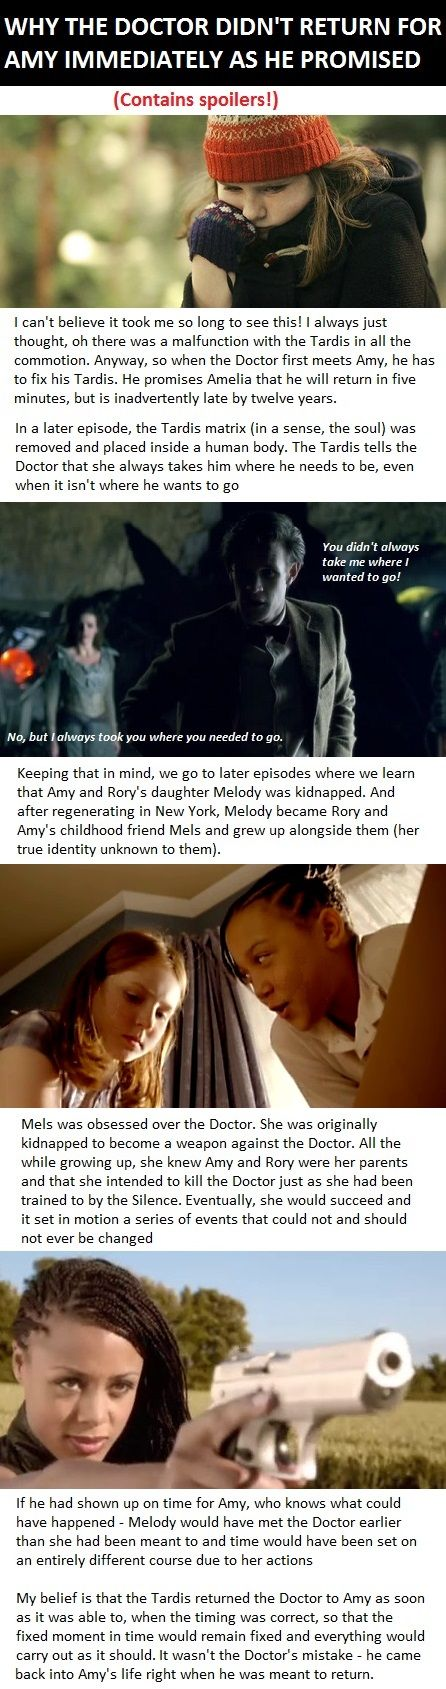 Why the Doctor didn't come back for Amy for 12 years - the whole course of history would change if he had been on time!